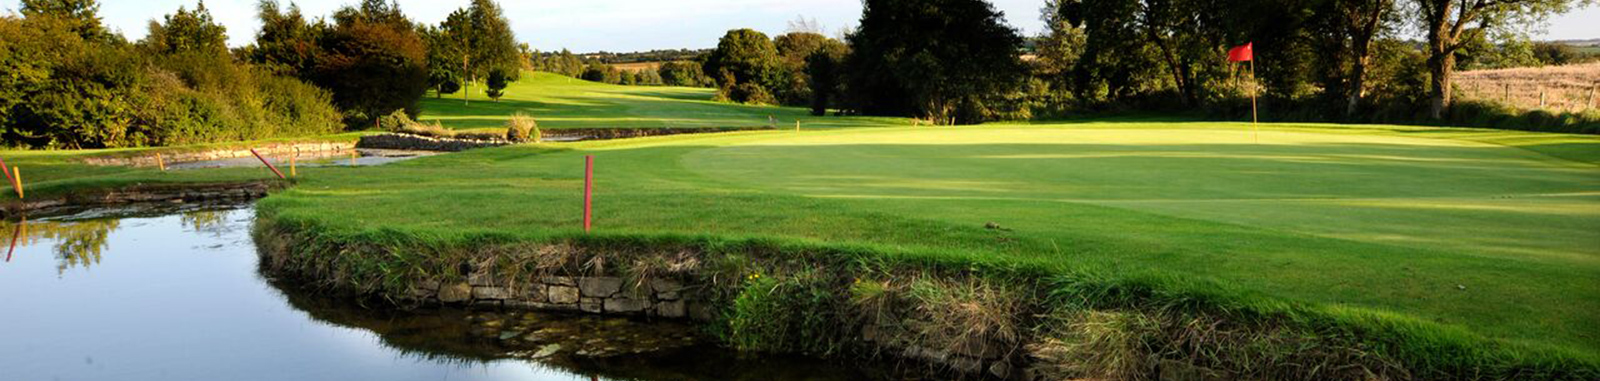 Overview of golf course named Kinsale Golf Club